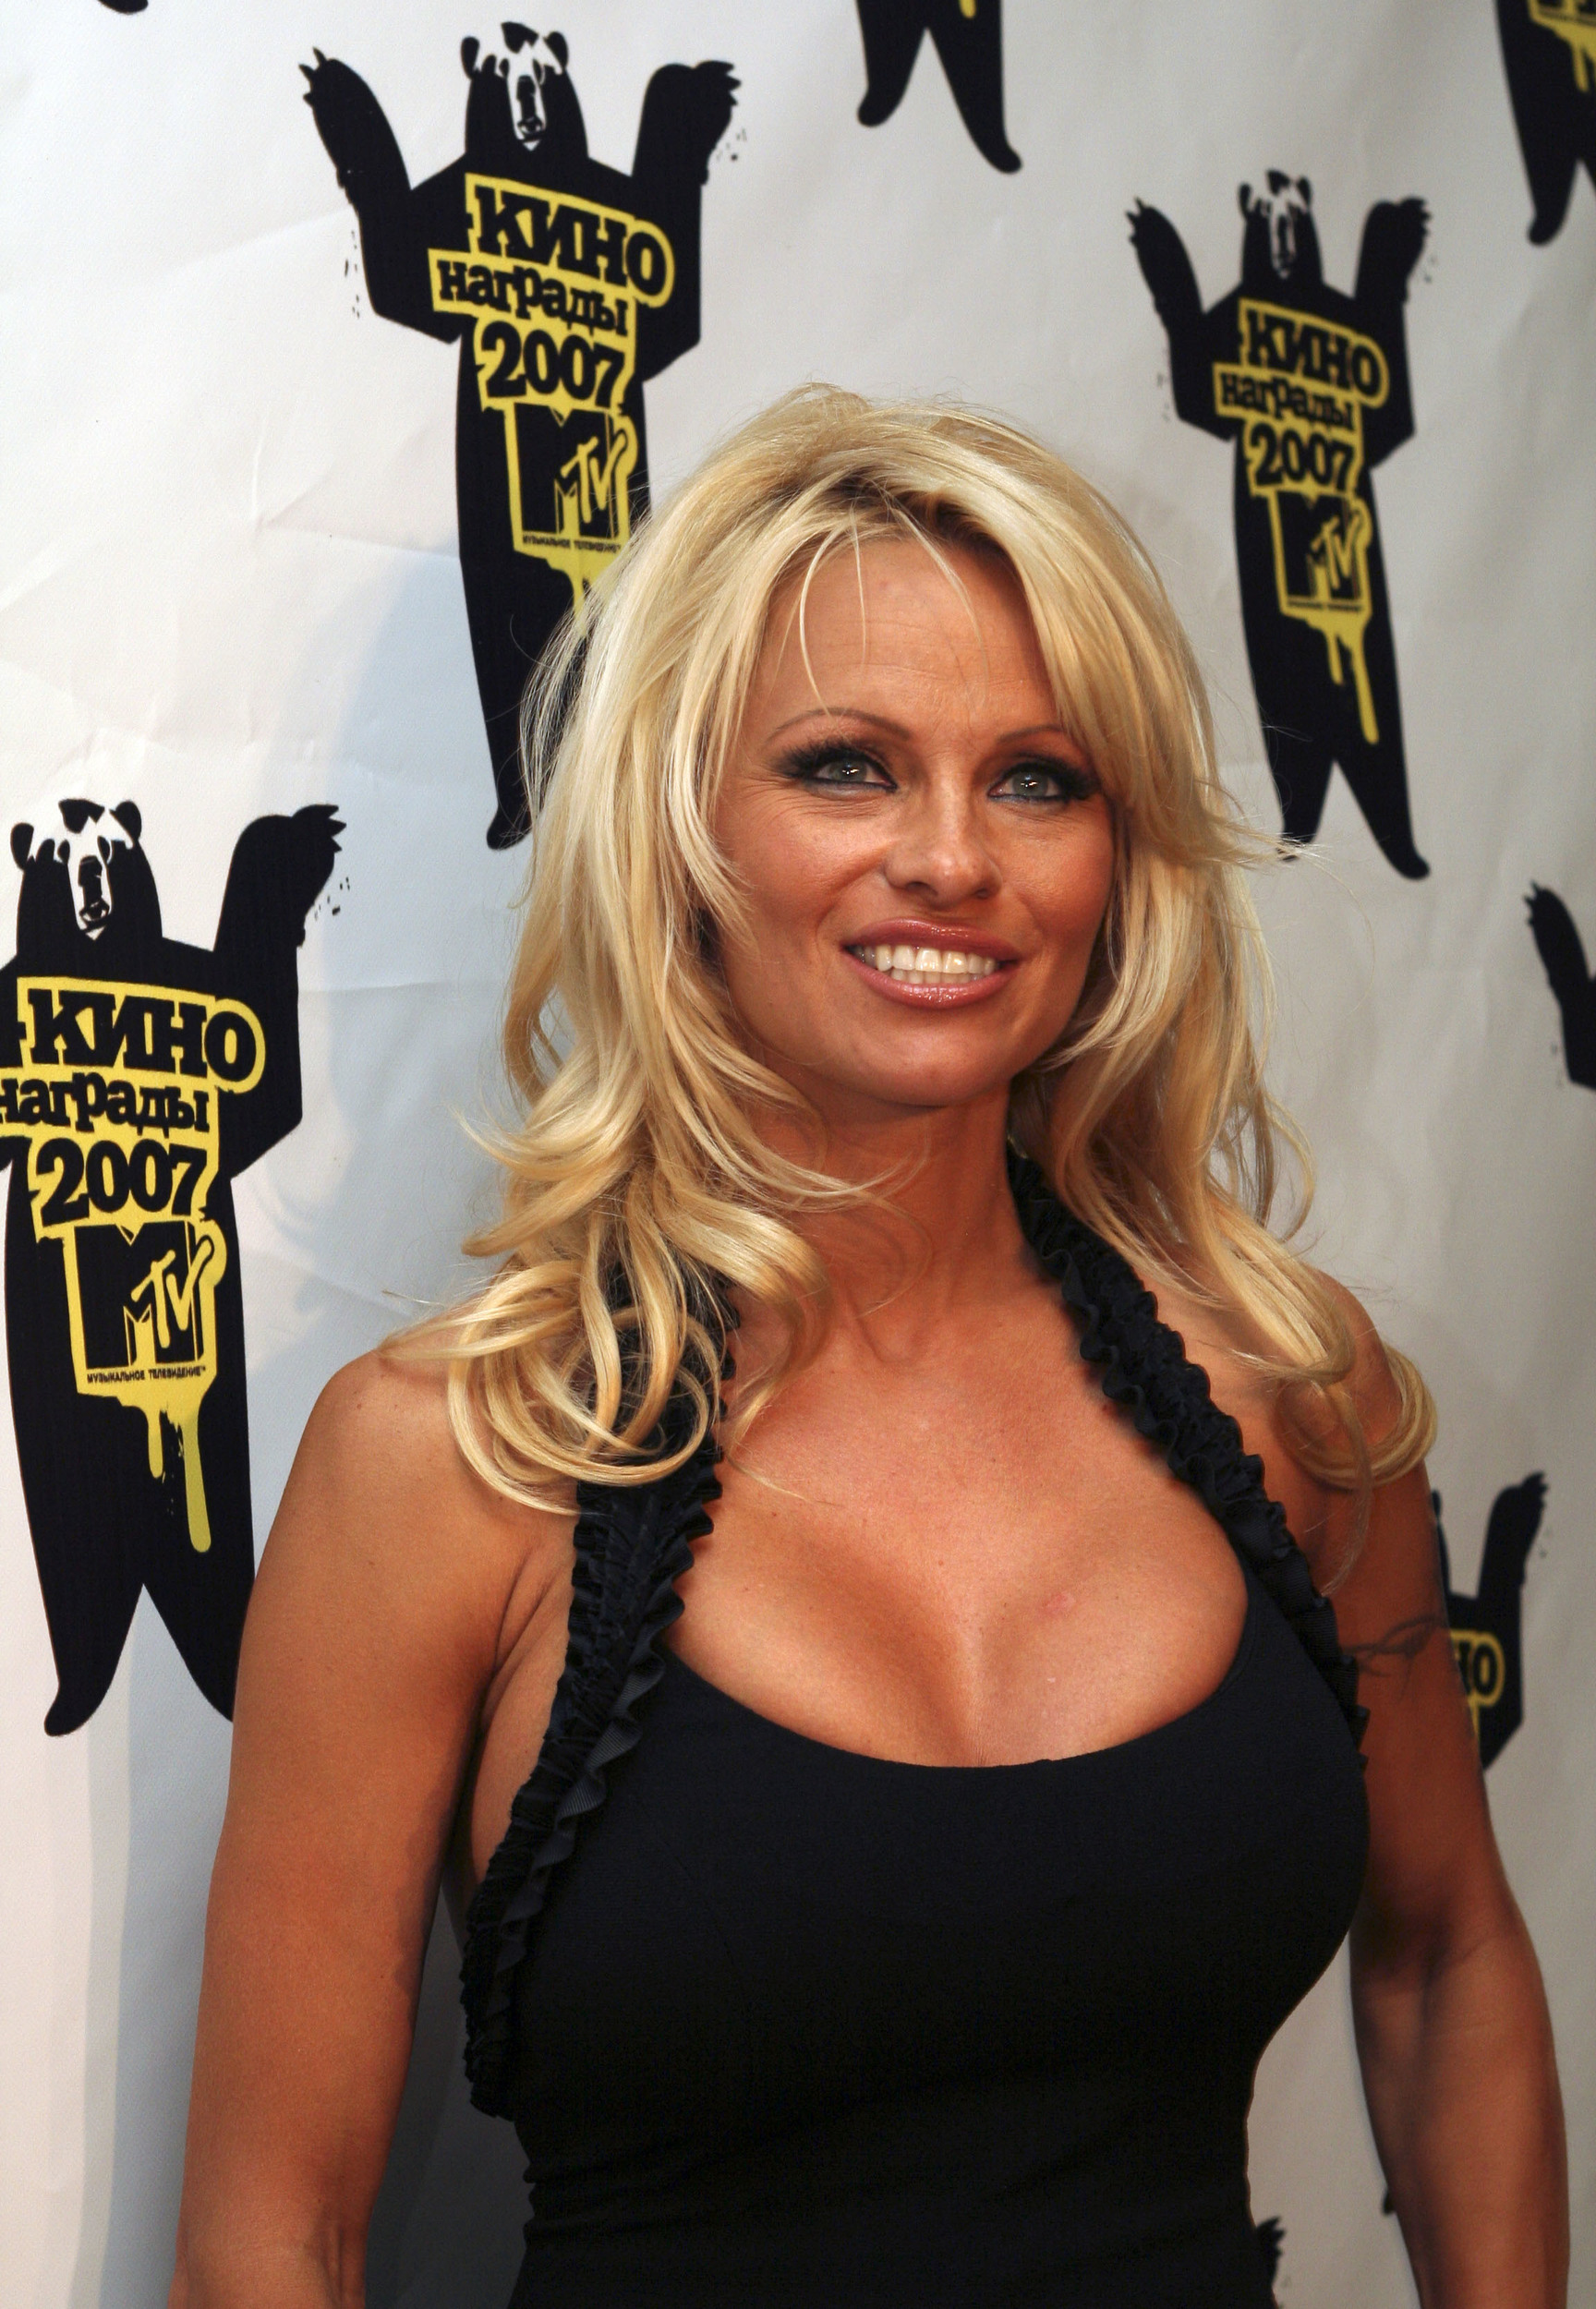 Pamela Anderson is unrecognizable on magazine cover